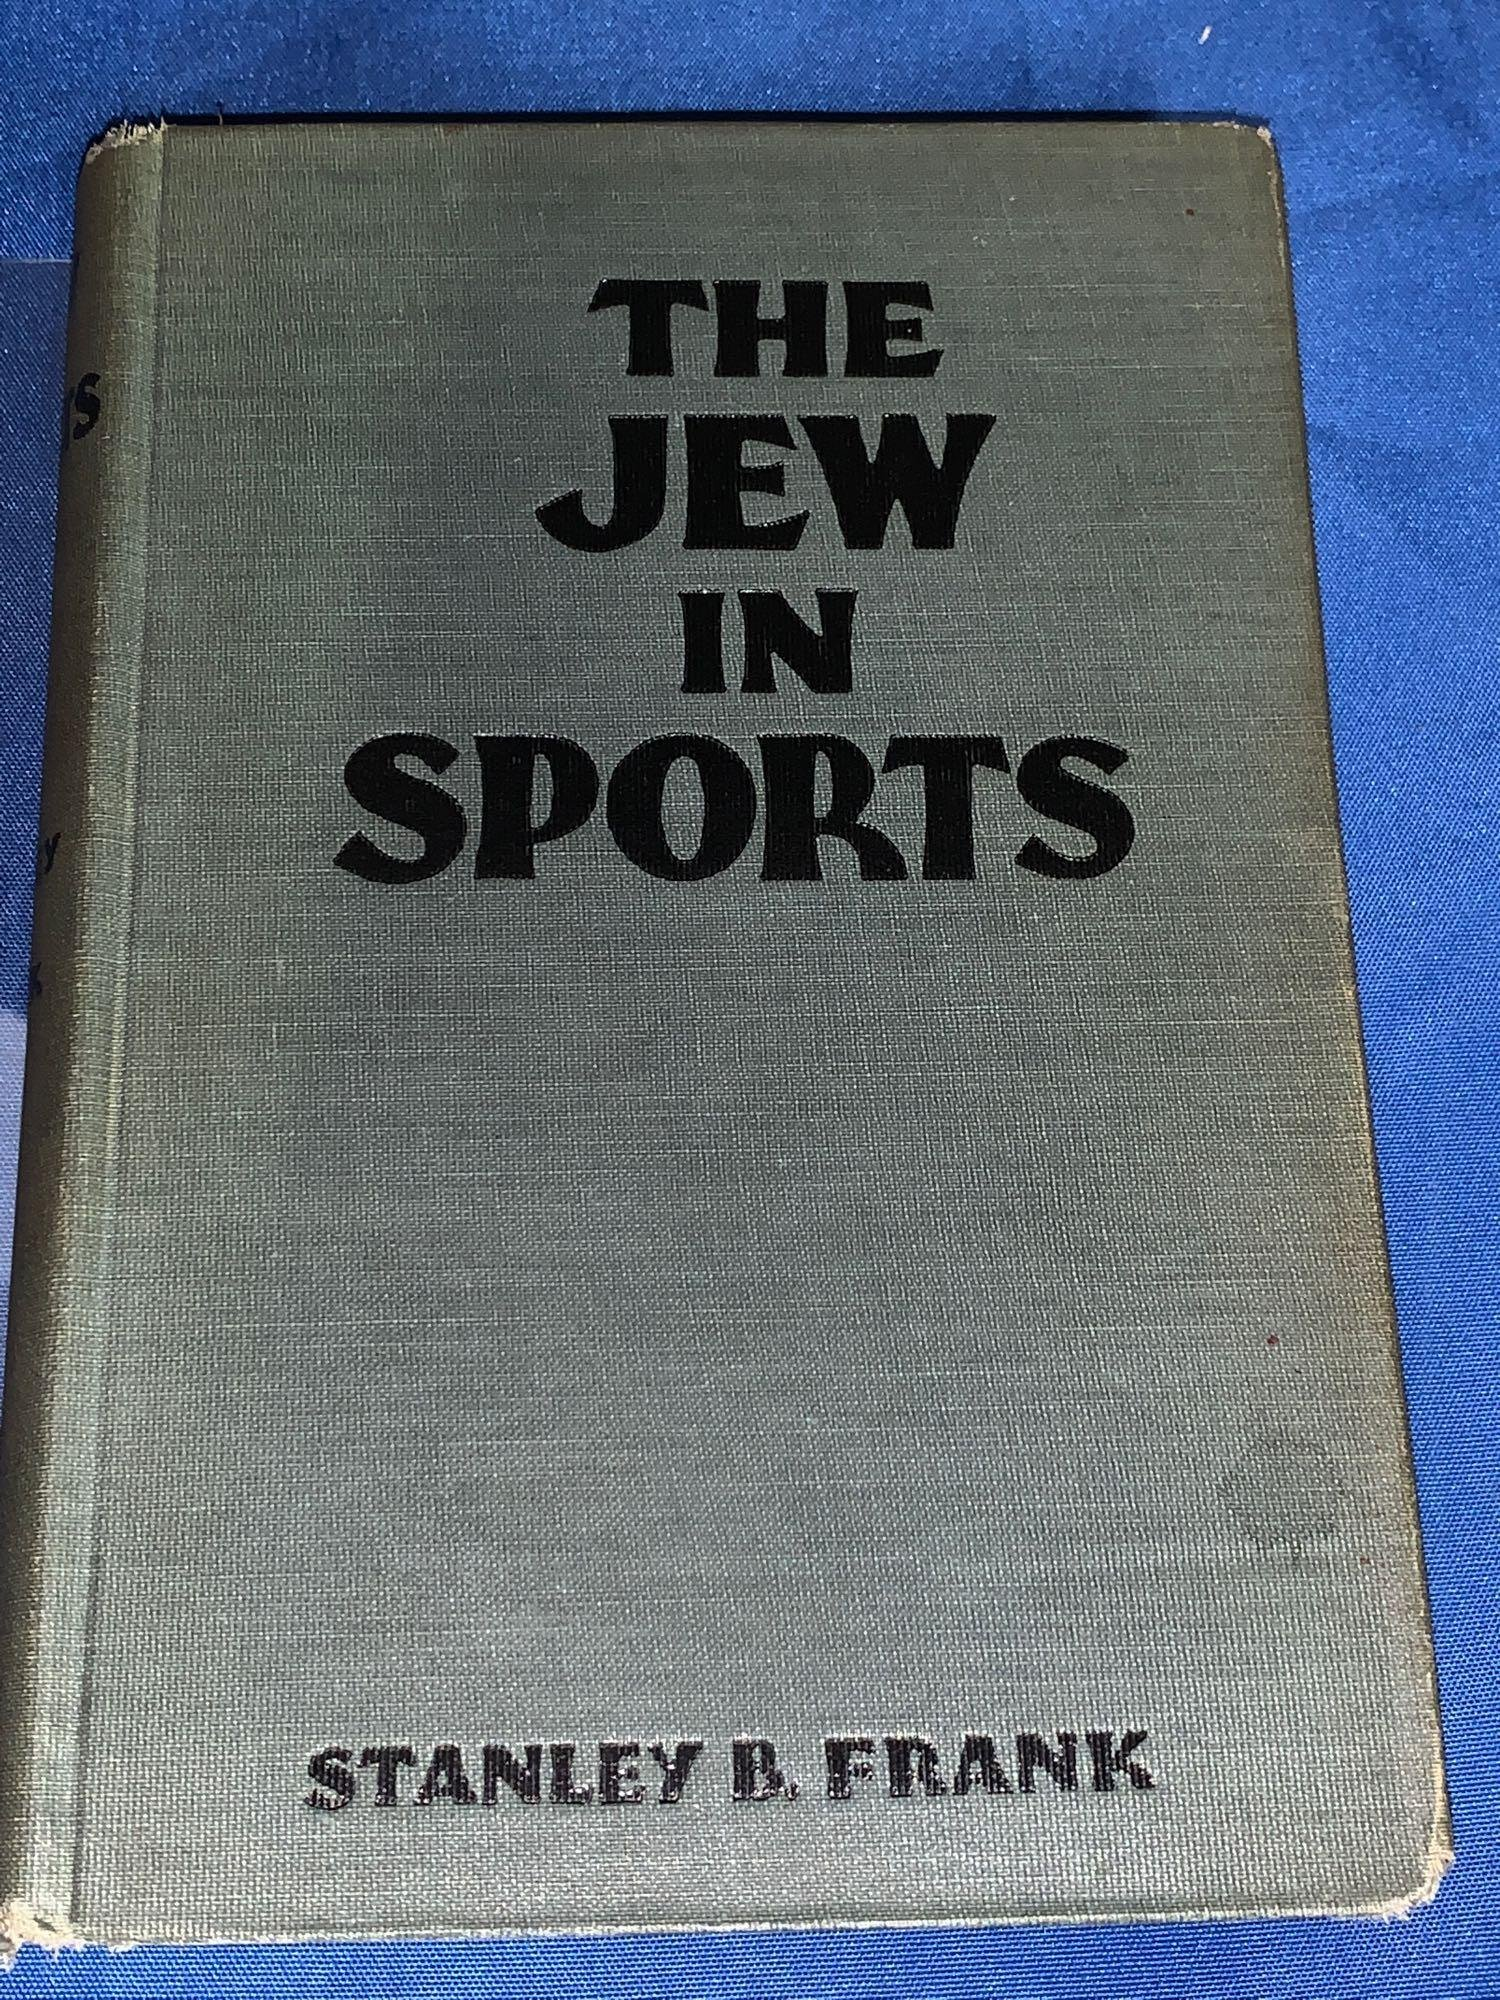 Stanley B. Frank, The Jew in Sports